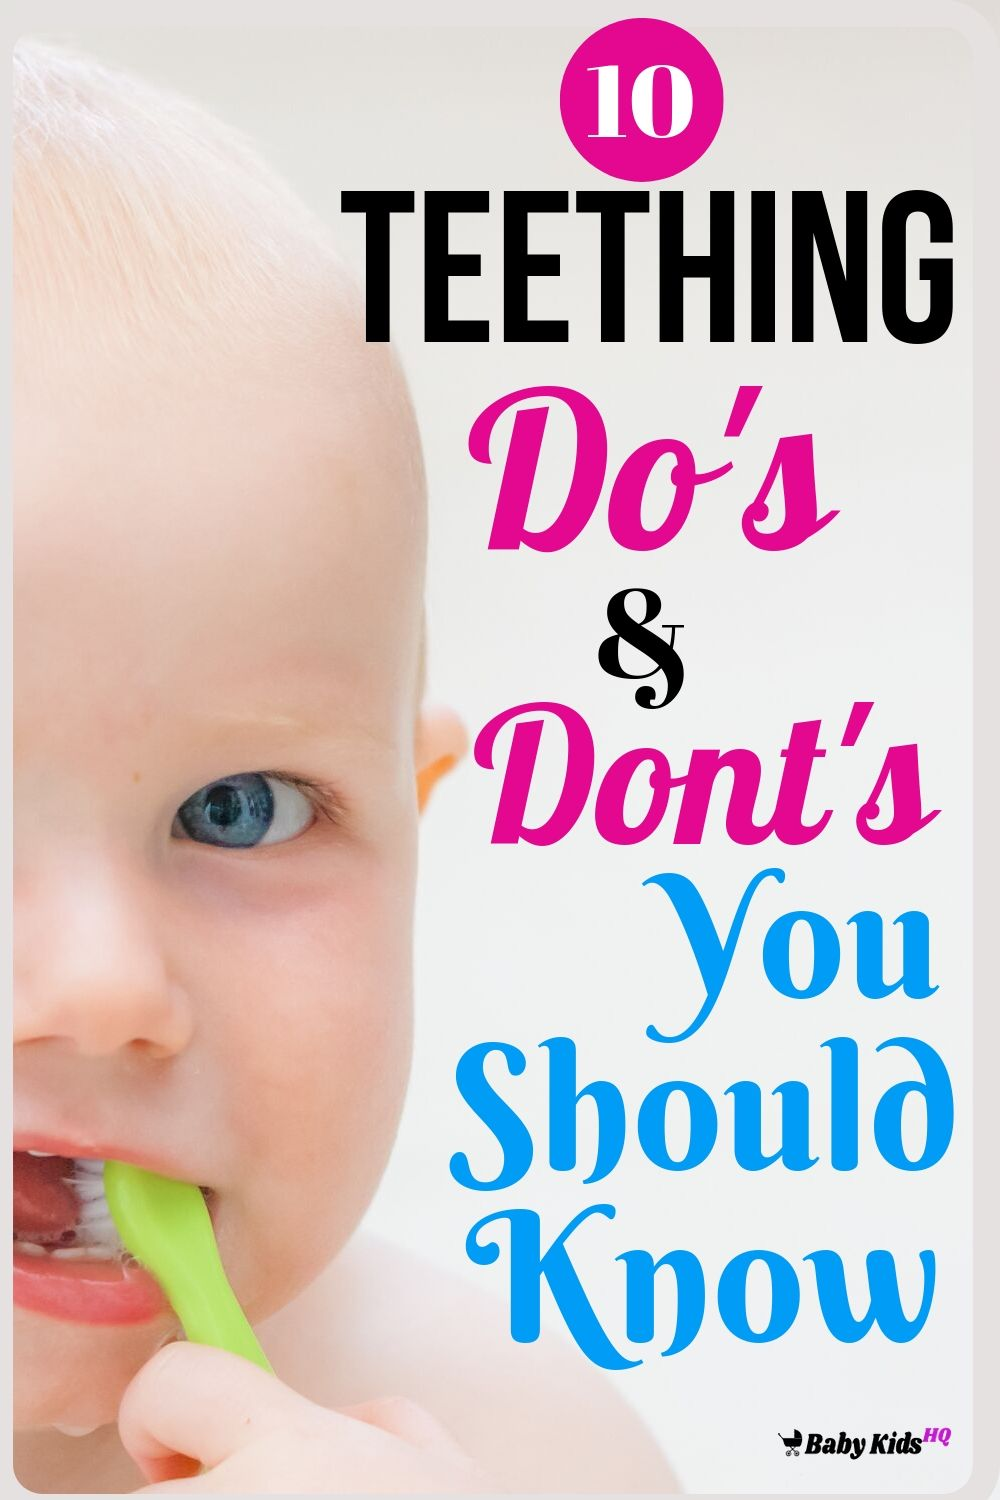 Is your baby fussy and gnawing on whatever object he can get his hands on? He could be teething! First time moms, don't panic, we at Baby Kids HQ got you covered.In this article, we will guide you through baby's teething process and what every new mom or first time parents should know about it.